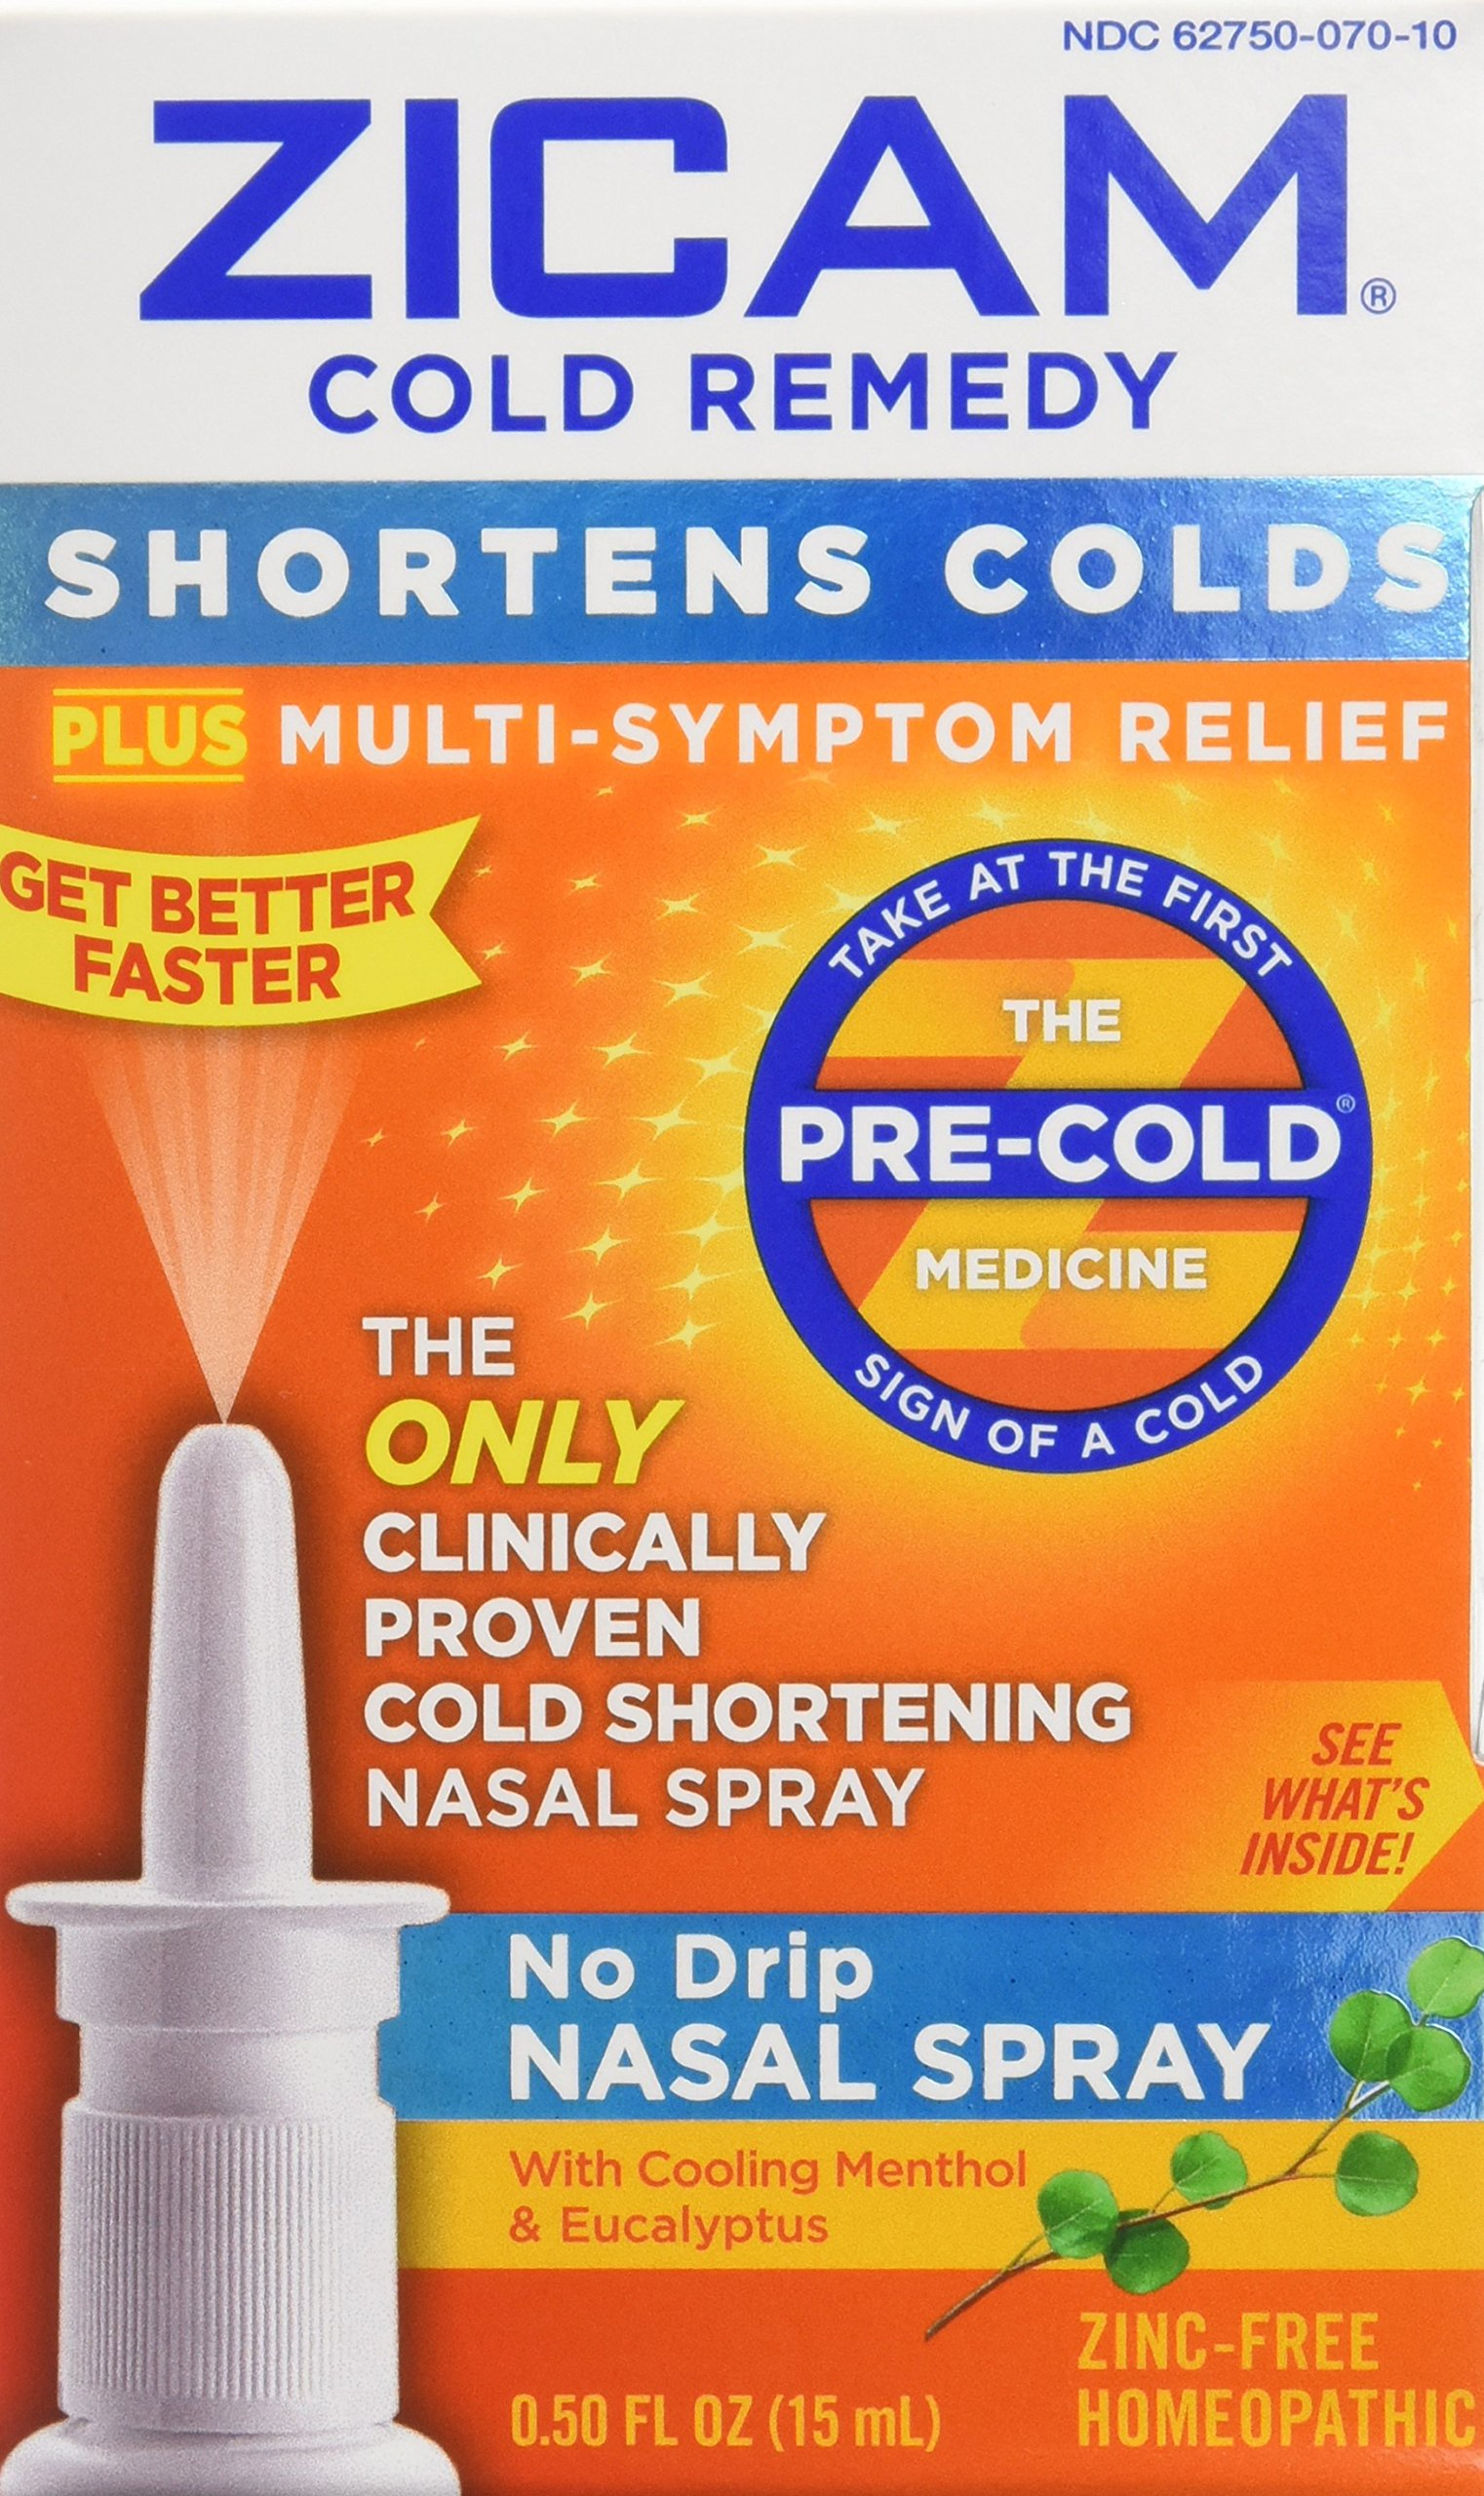 Zicam Cold Remedy No Drip Nasal Spray, 0.5 oz., Pack of 2